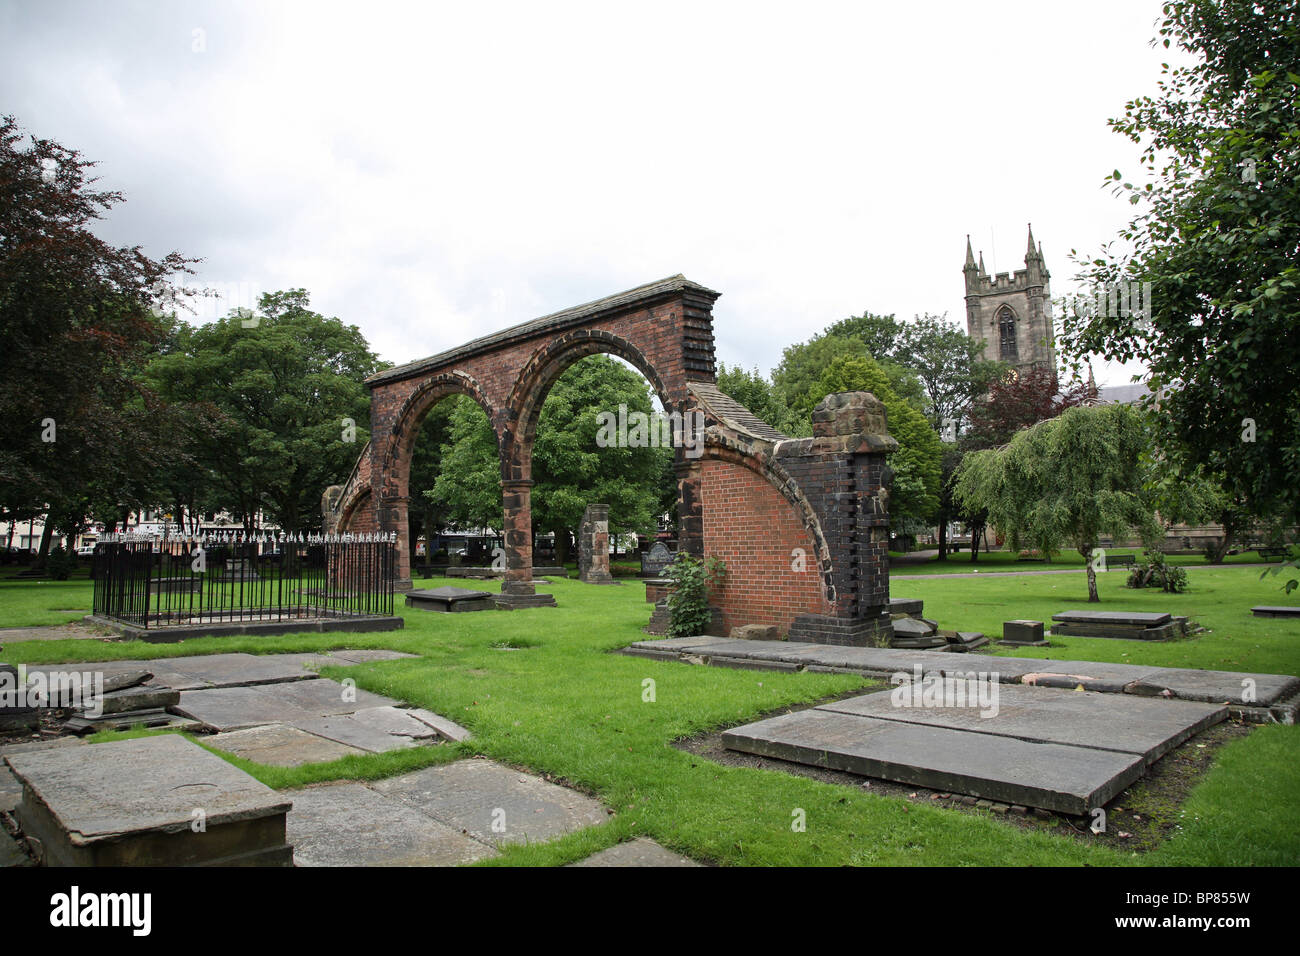 Graveyard of Stoke Minster, the Church of St Peter ad Vincula, Stoke-on-Trent, Staffordshire, England, UK - Stock Image